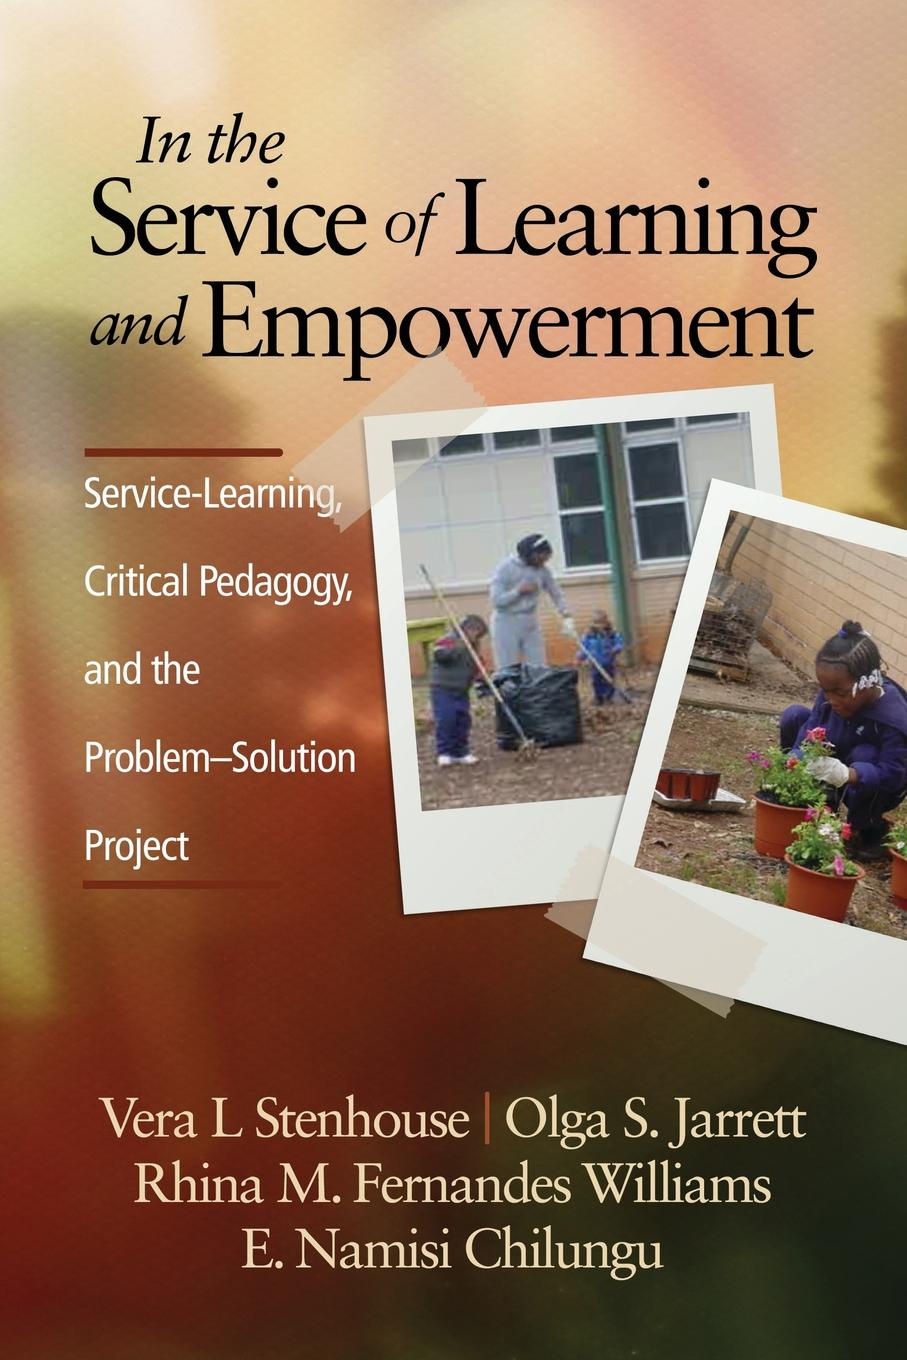 In the Service of Learning and Empowerment. Service-Learning, Critical Pedagogy, and the Problem-Solution Project service learning pedagogy how does it measure up